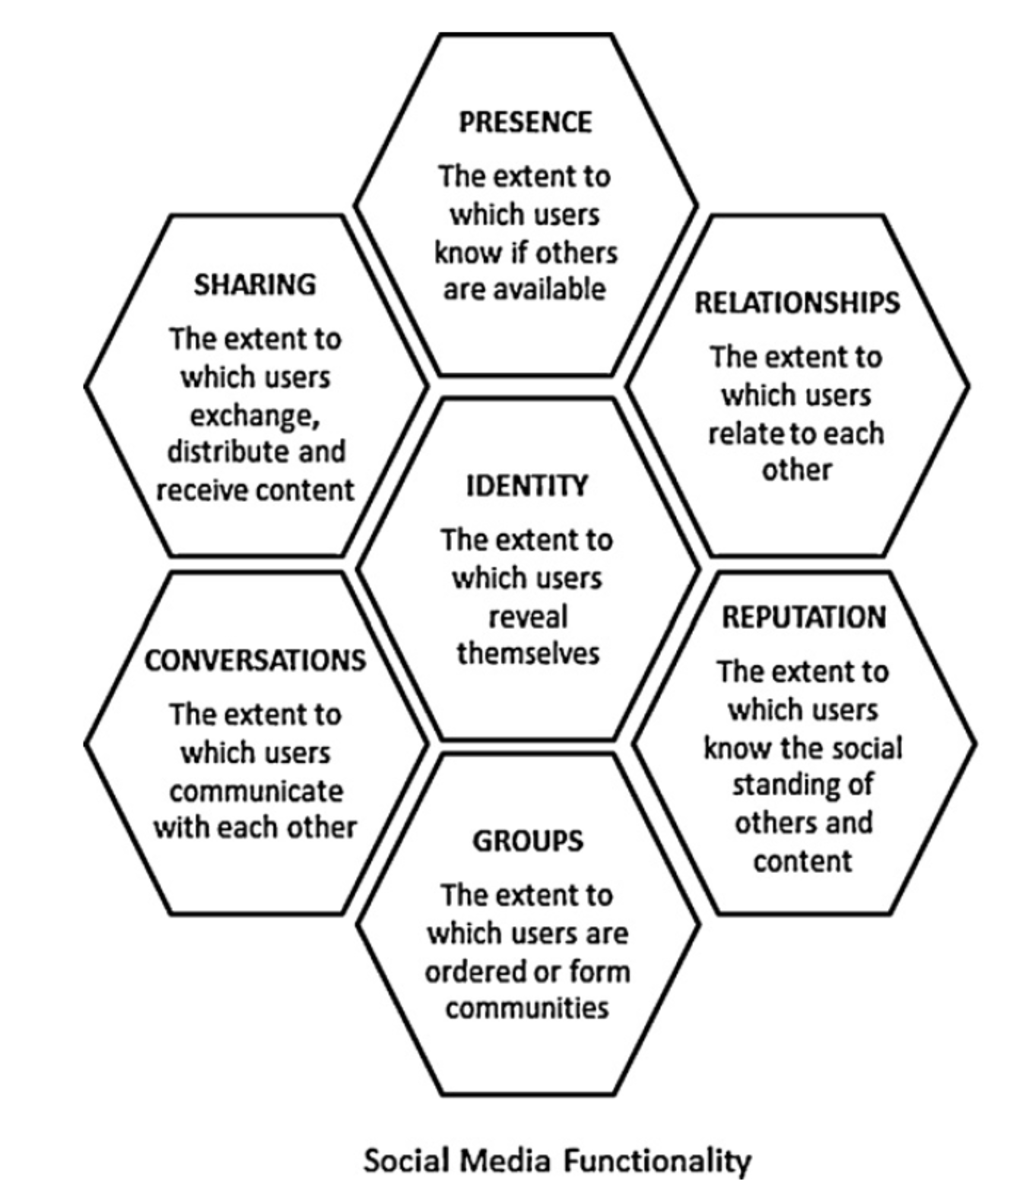 Social Media Functionality: Each block of the framework allows you to unpack and examine a specific facet of social media user experience, and its implications to make sense of the social media ecology, and understand their audience and their engagem